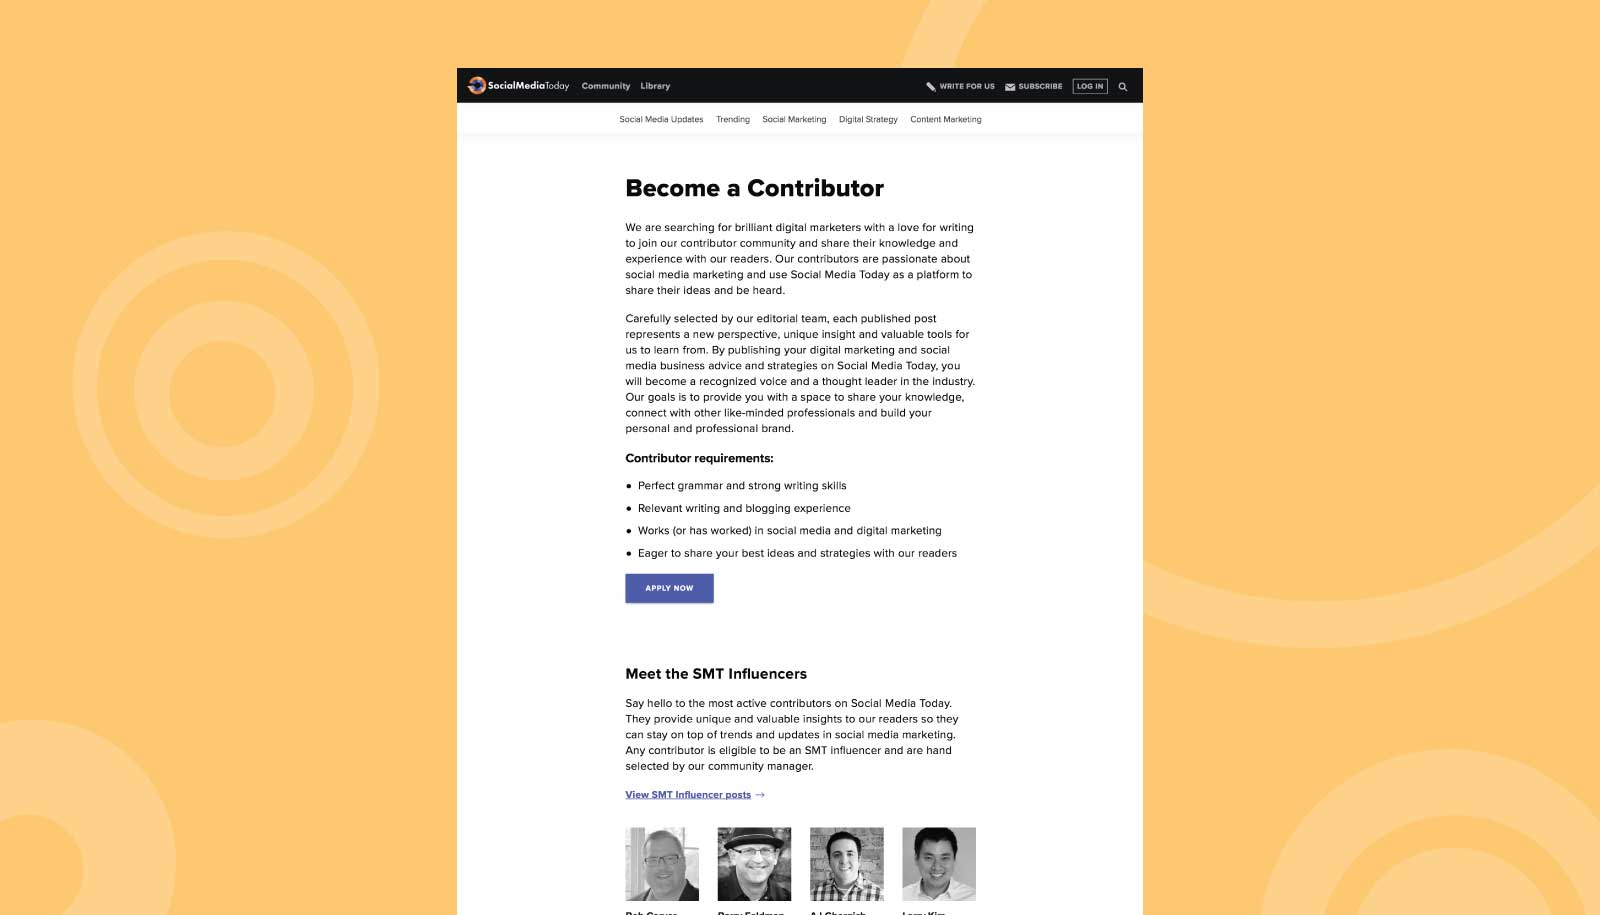 Become a Contributor page redesign